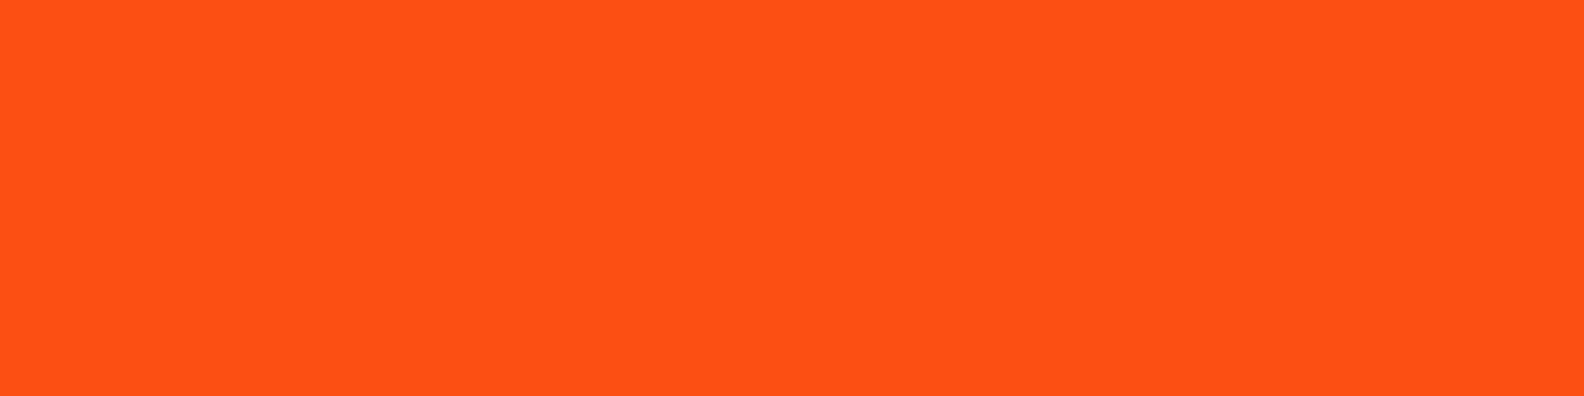 1584x396 Orioles Orange Solid Color Background